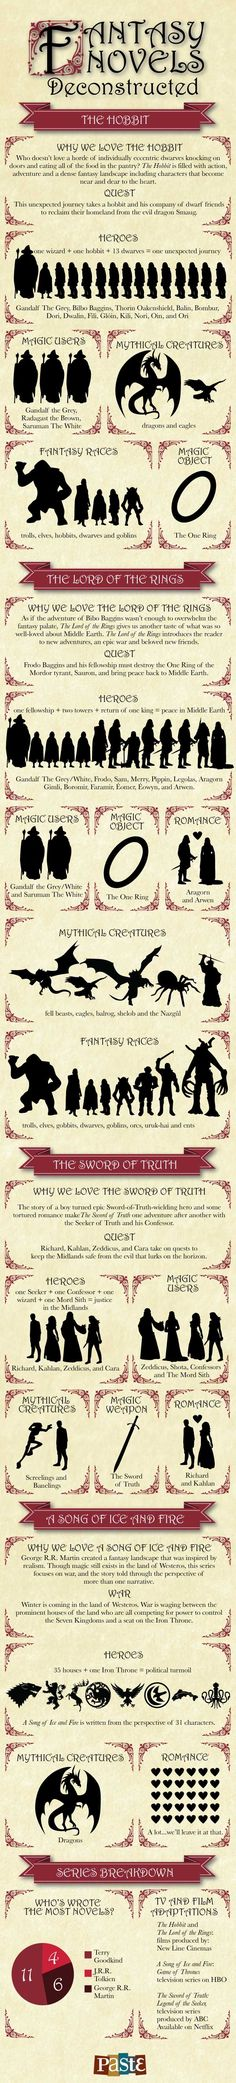 Why we love The Hobbit,  and the Lord of the Rings, Sword of Truth and A Song of Ice and Fire series...